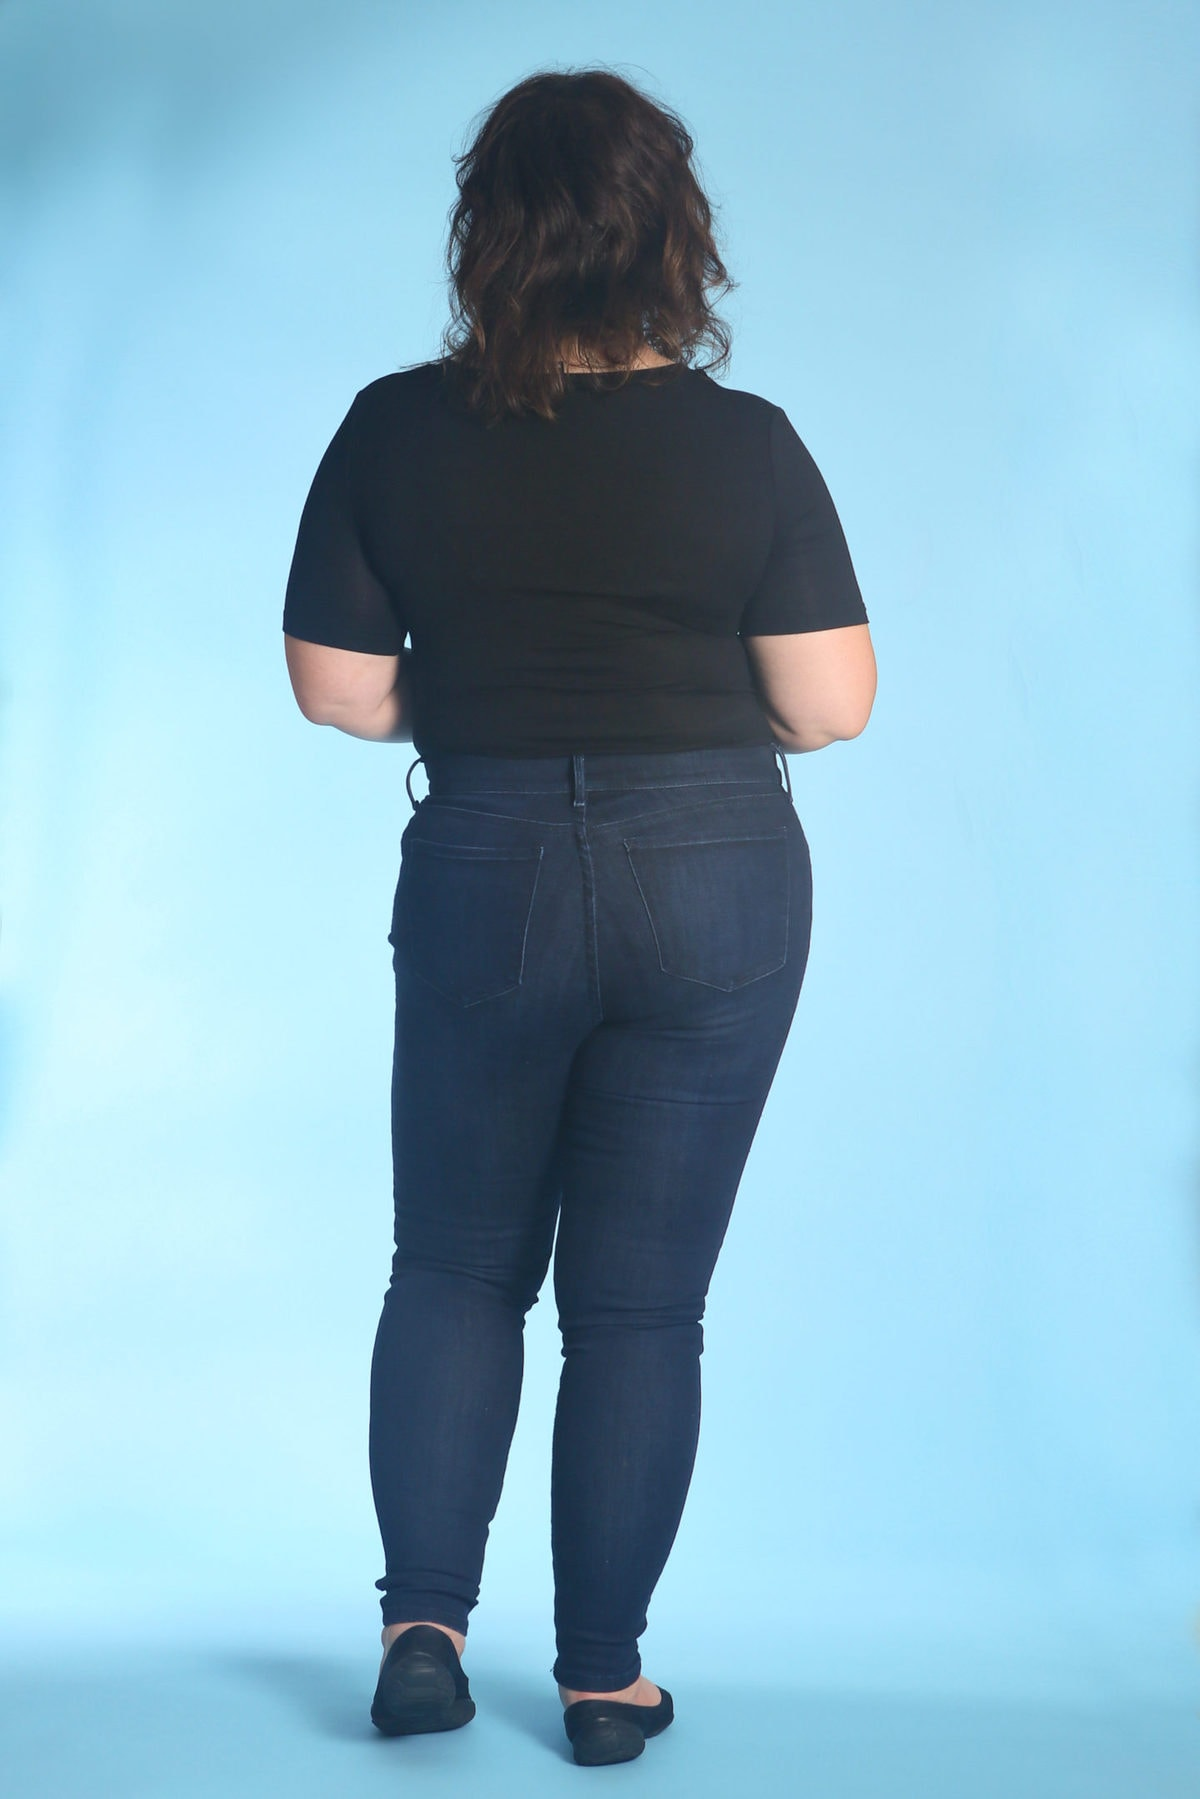 A review of Mott & Bow High-Rise Skinny Jeans by Wardrobe Oxygen